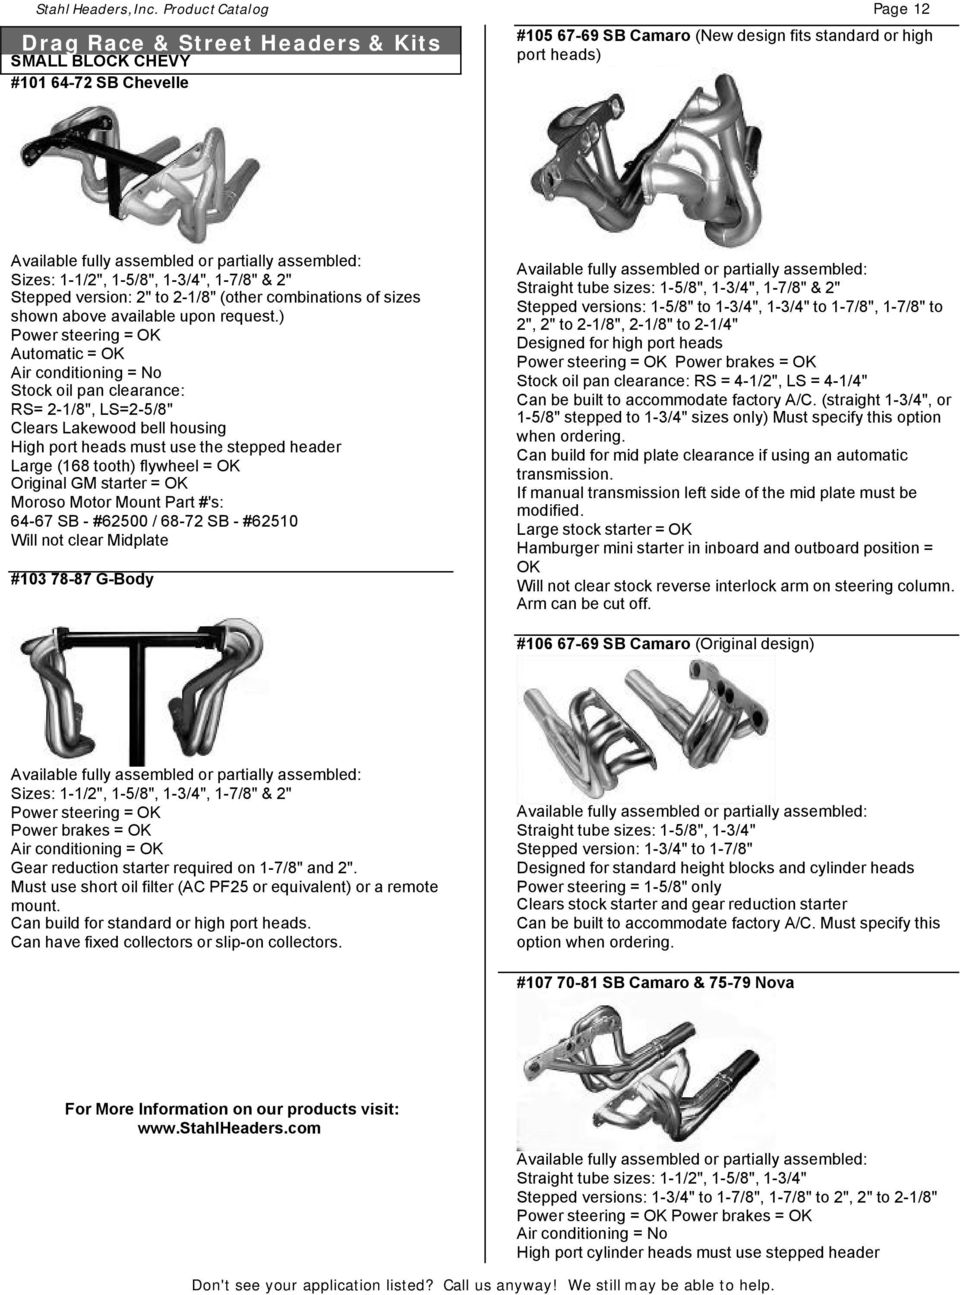 Product Catalog  Manufacturing #1 Quality Headers & Parts Since PDF